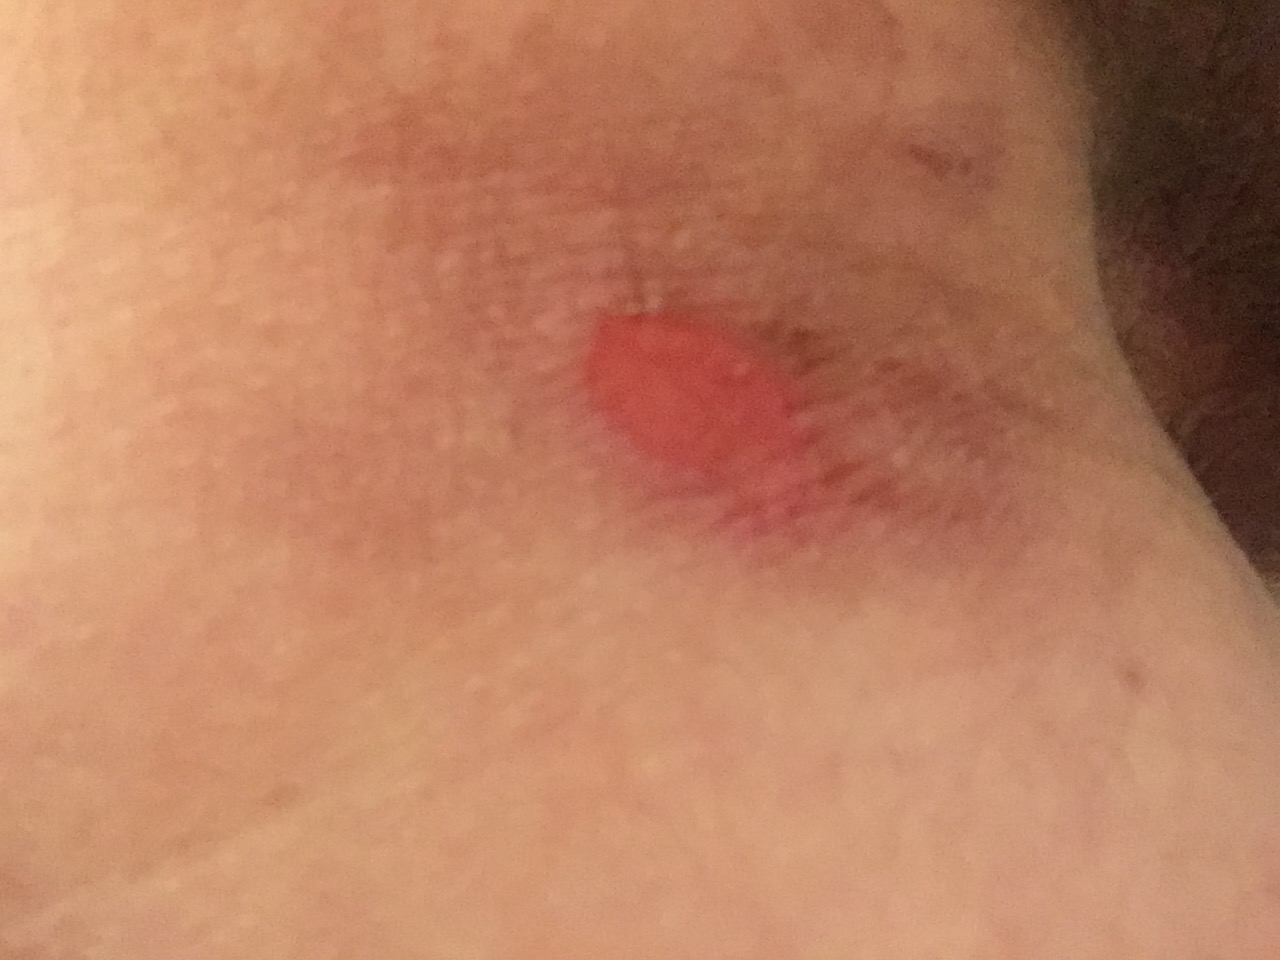 Saddle-sore selfie, about the size of a quarter